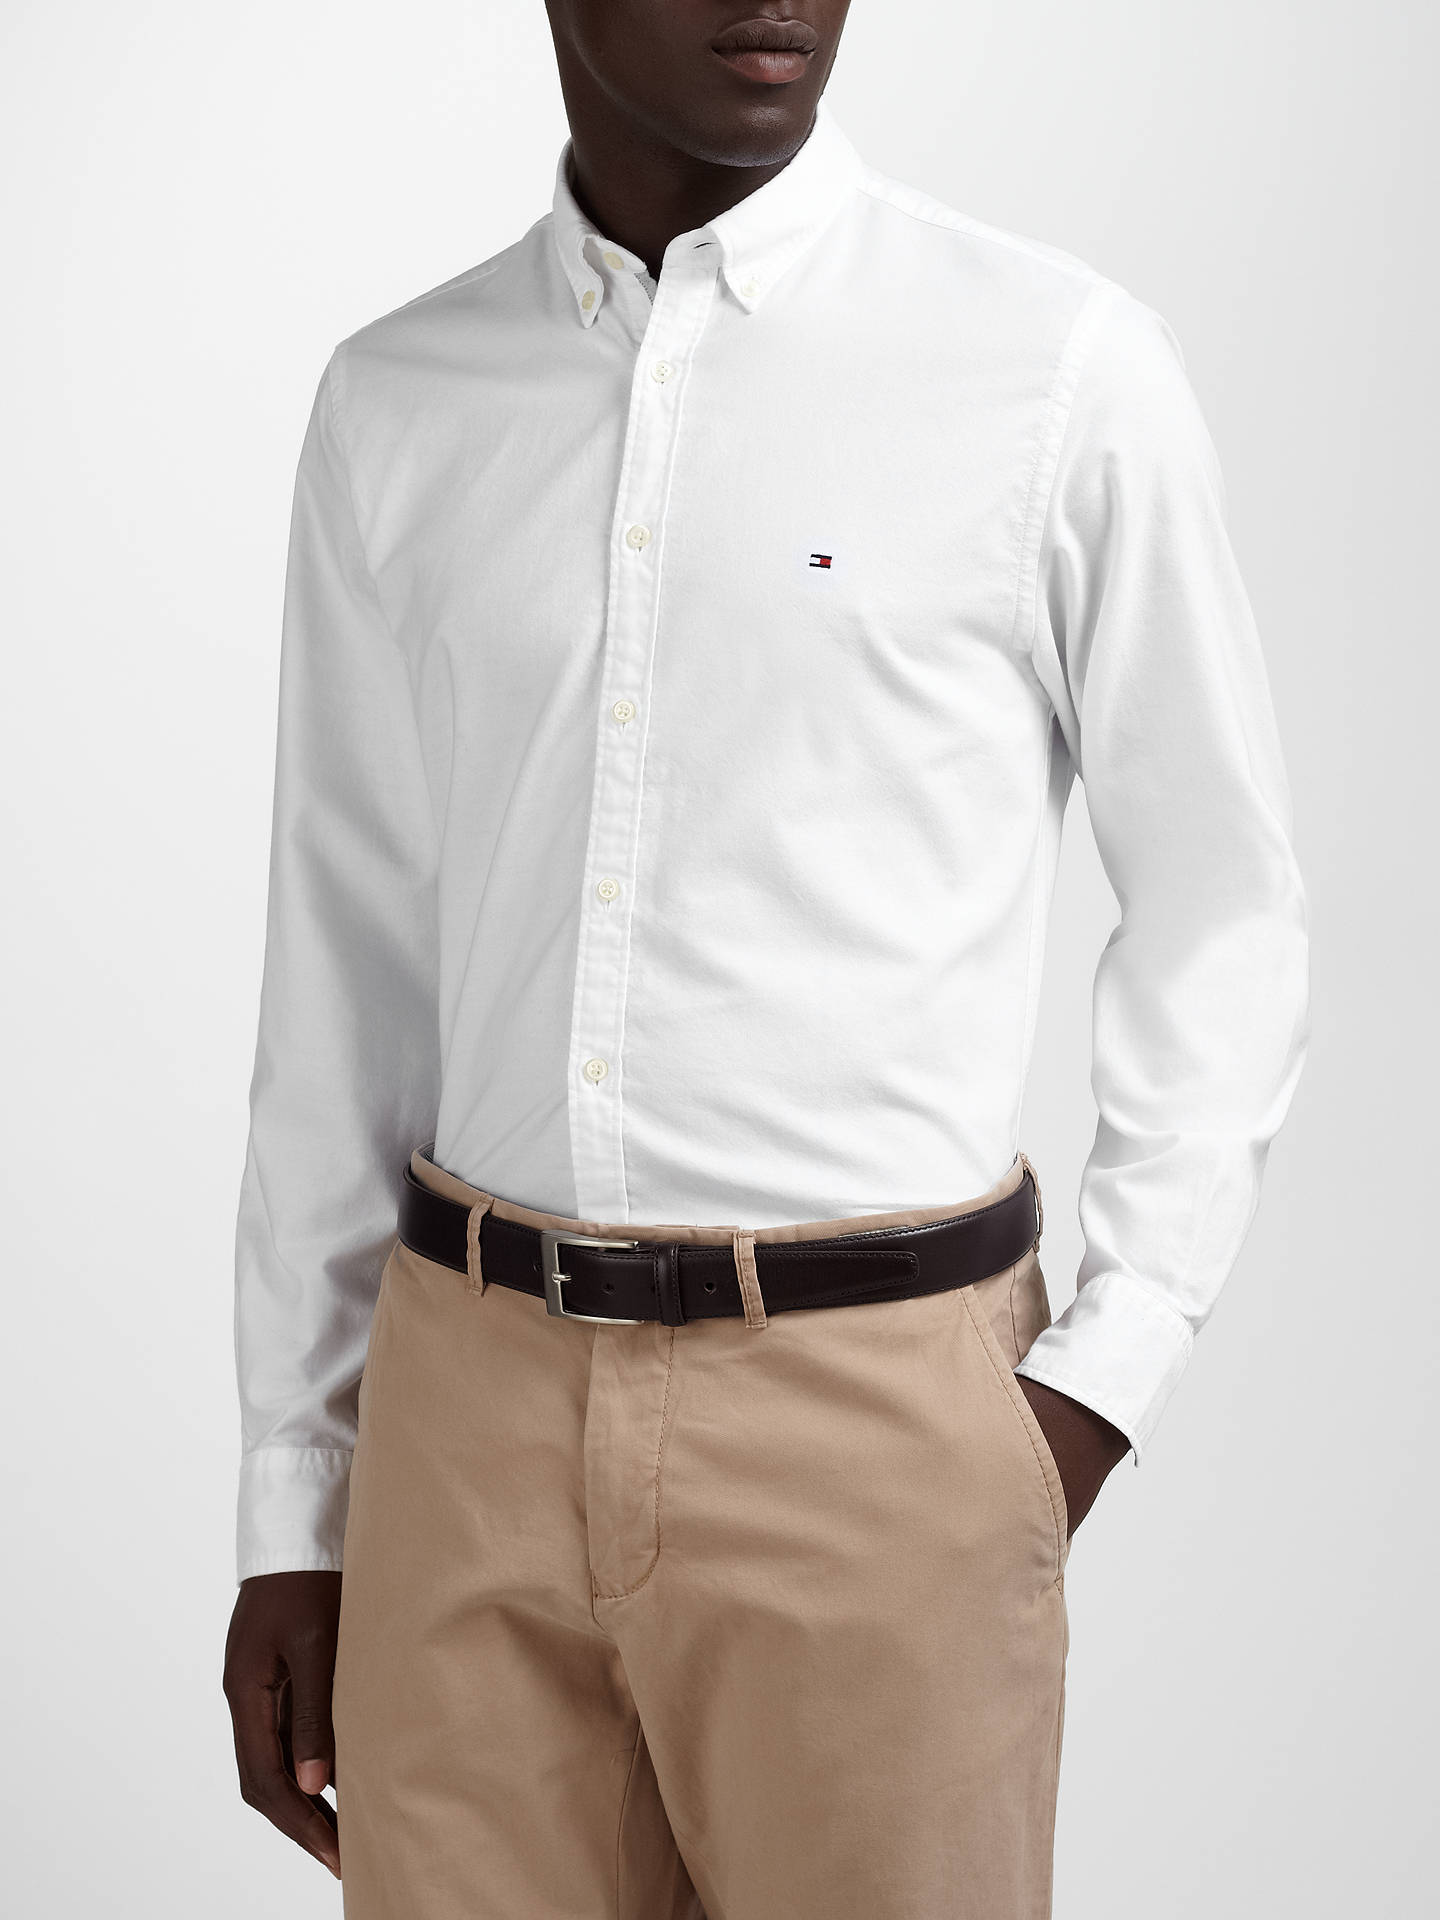 4c0a079c ... Buy Tommy Hilfiger Ivy Oxford Shirt, White, M Online at johnlewis.com  ...